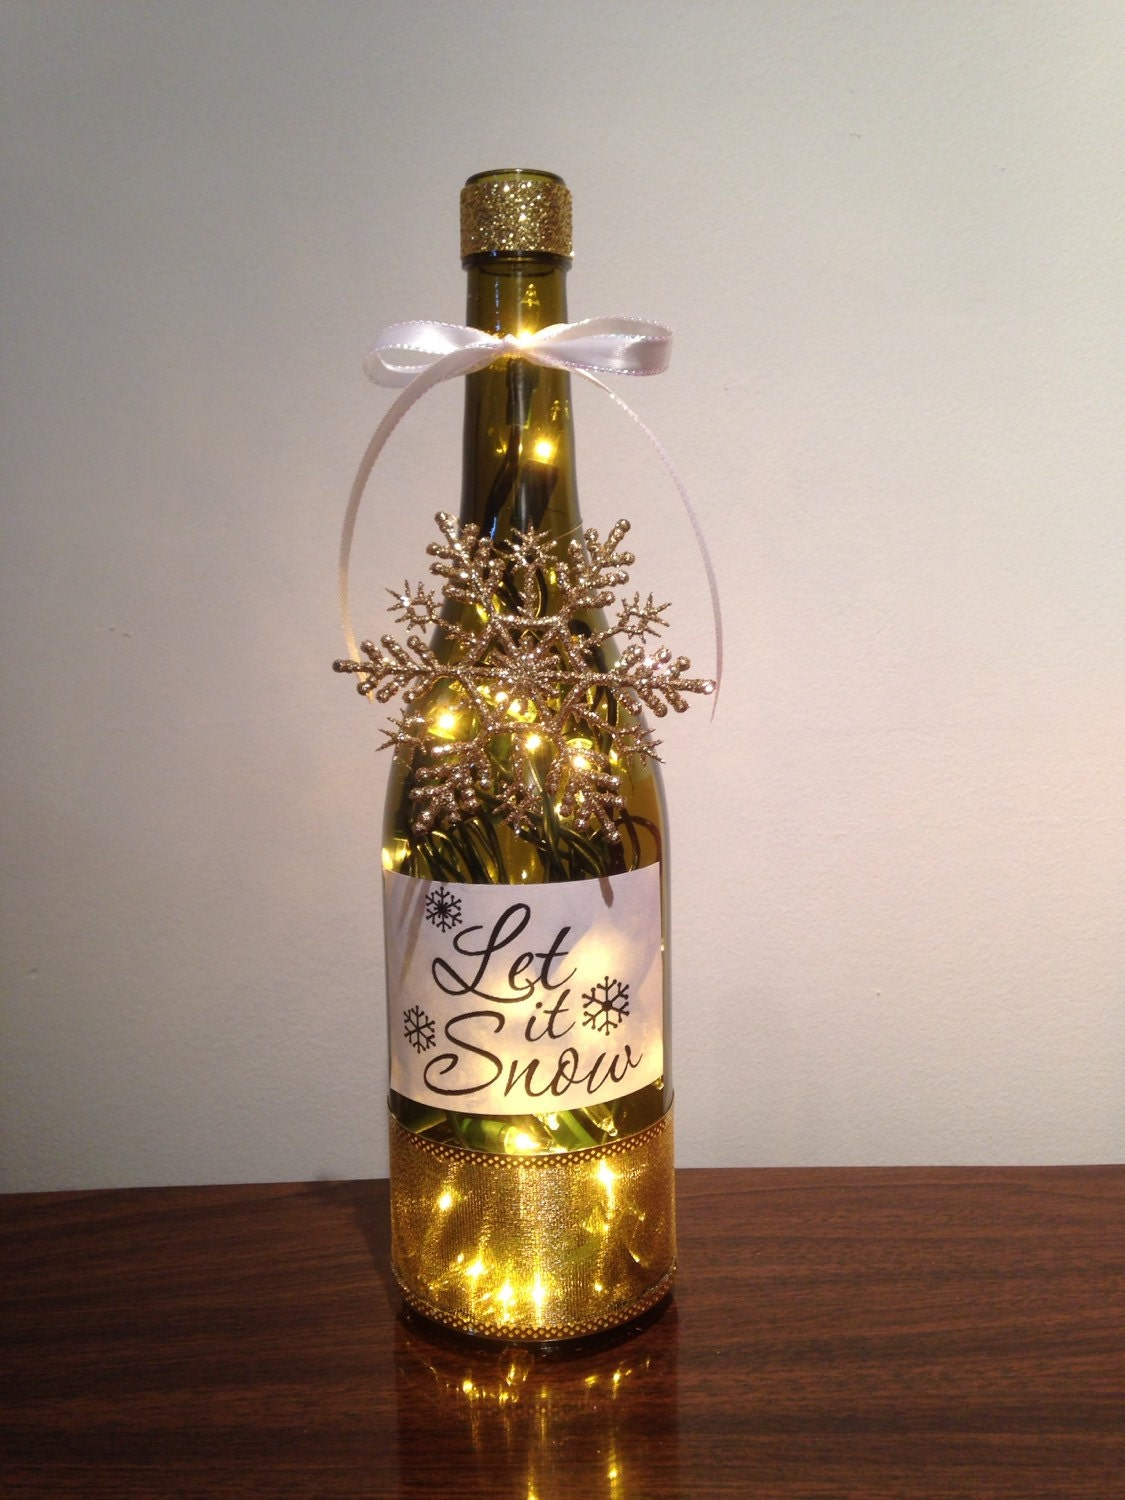 Let it snow wine bottle lamp winter decor night by for Christmas bottle decorations